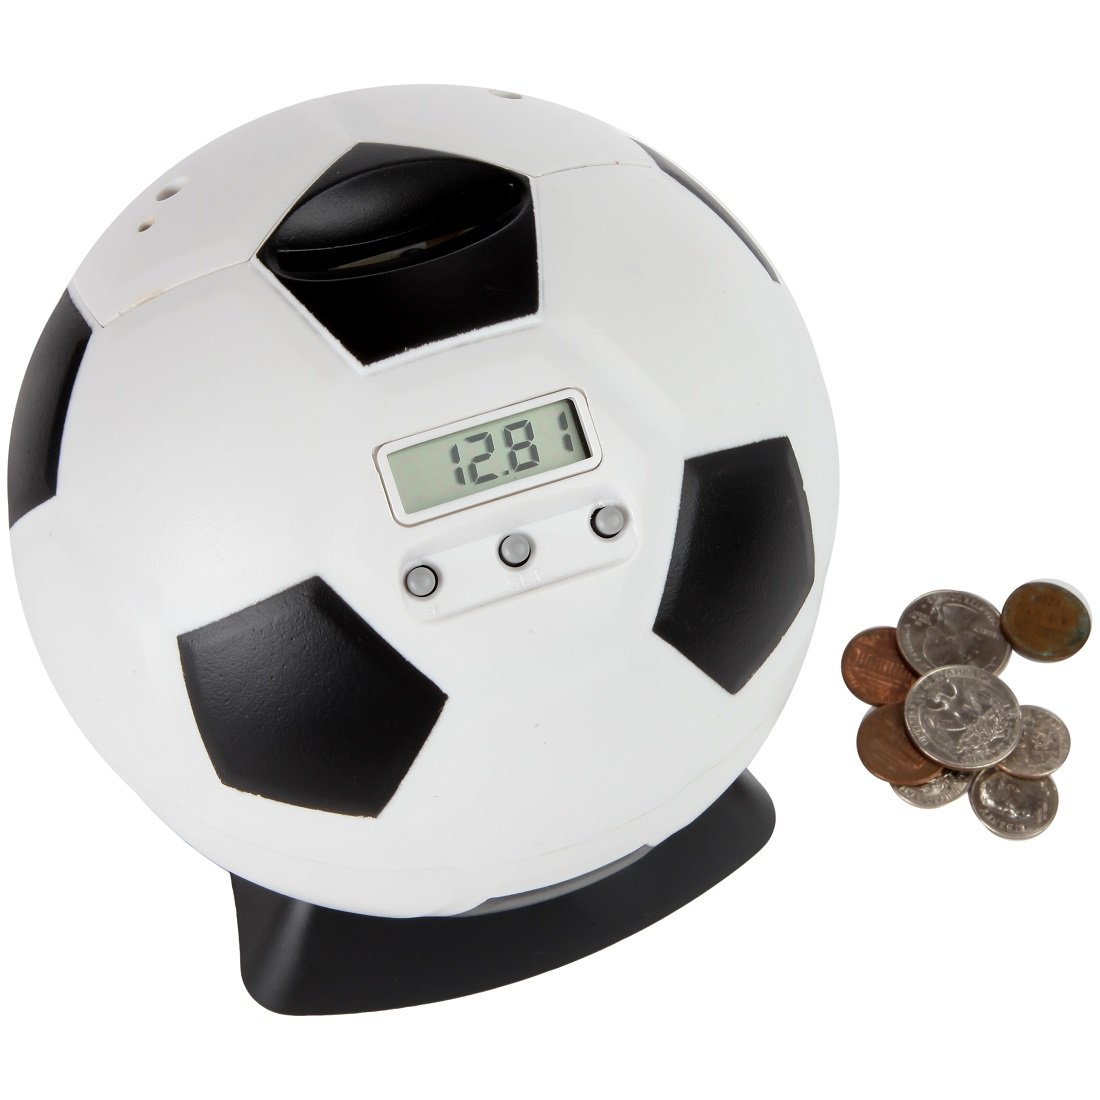 Lily's Home Kid's Money Counting Soccer Ball Digital Coin Bank, Counts U.S. Pennies, Nickels, Dimes, Quarters, Half Dollars, and Dollar Coins, Ideal for Personal Savings, Learning or Play